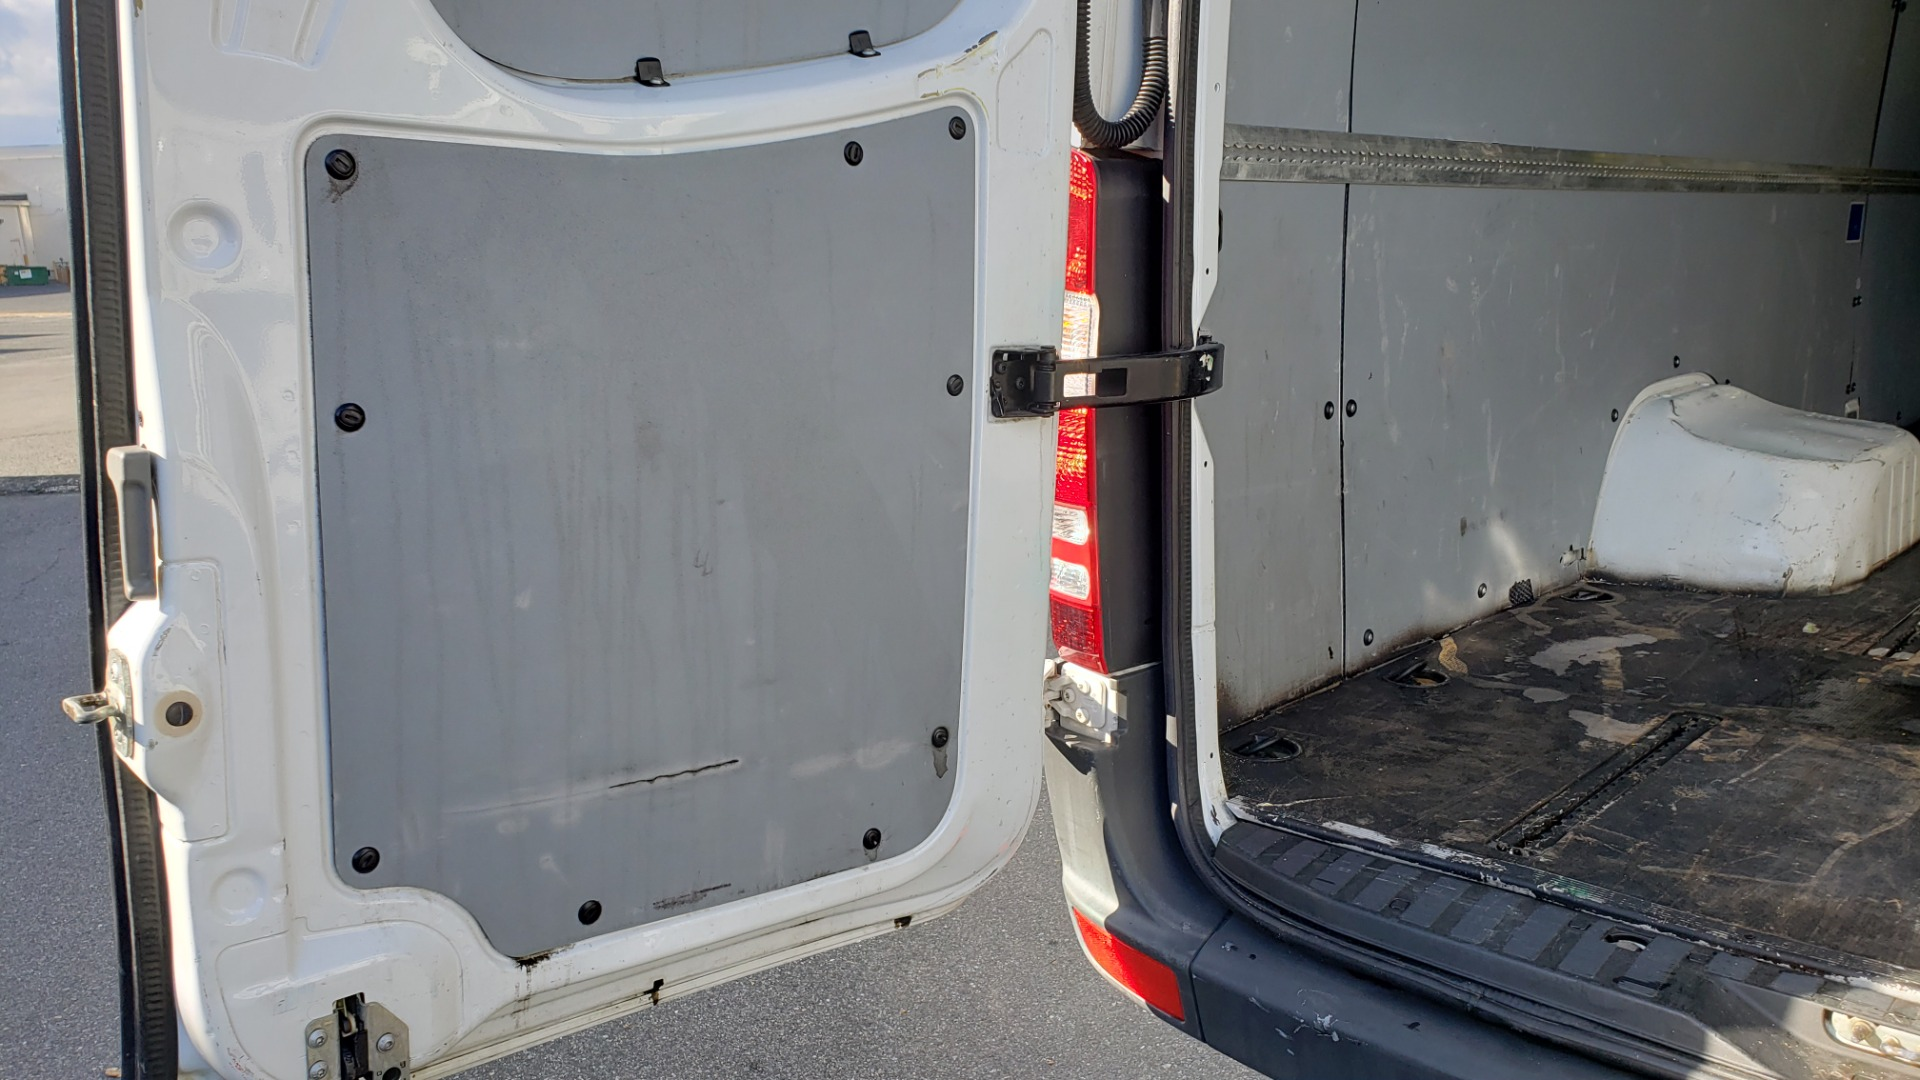 Used 2015 Mercedes-Benz SPRINTER CARGO VAN 4x4 3500 170 EXT / 3.0L V6 TURBO DIESEL / 5-SPD AUTO / REARVIEW for sale $51,999 at Formula Imports in Charlotte NC 28227 46